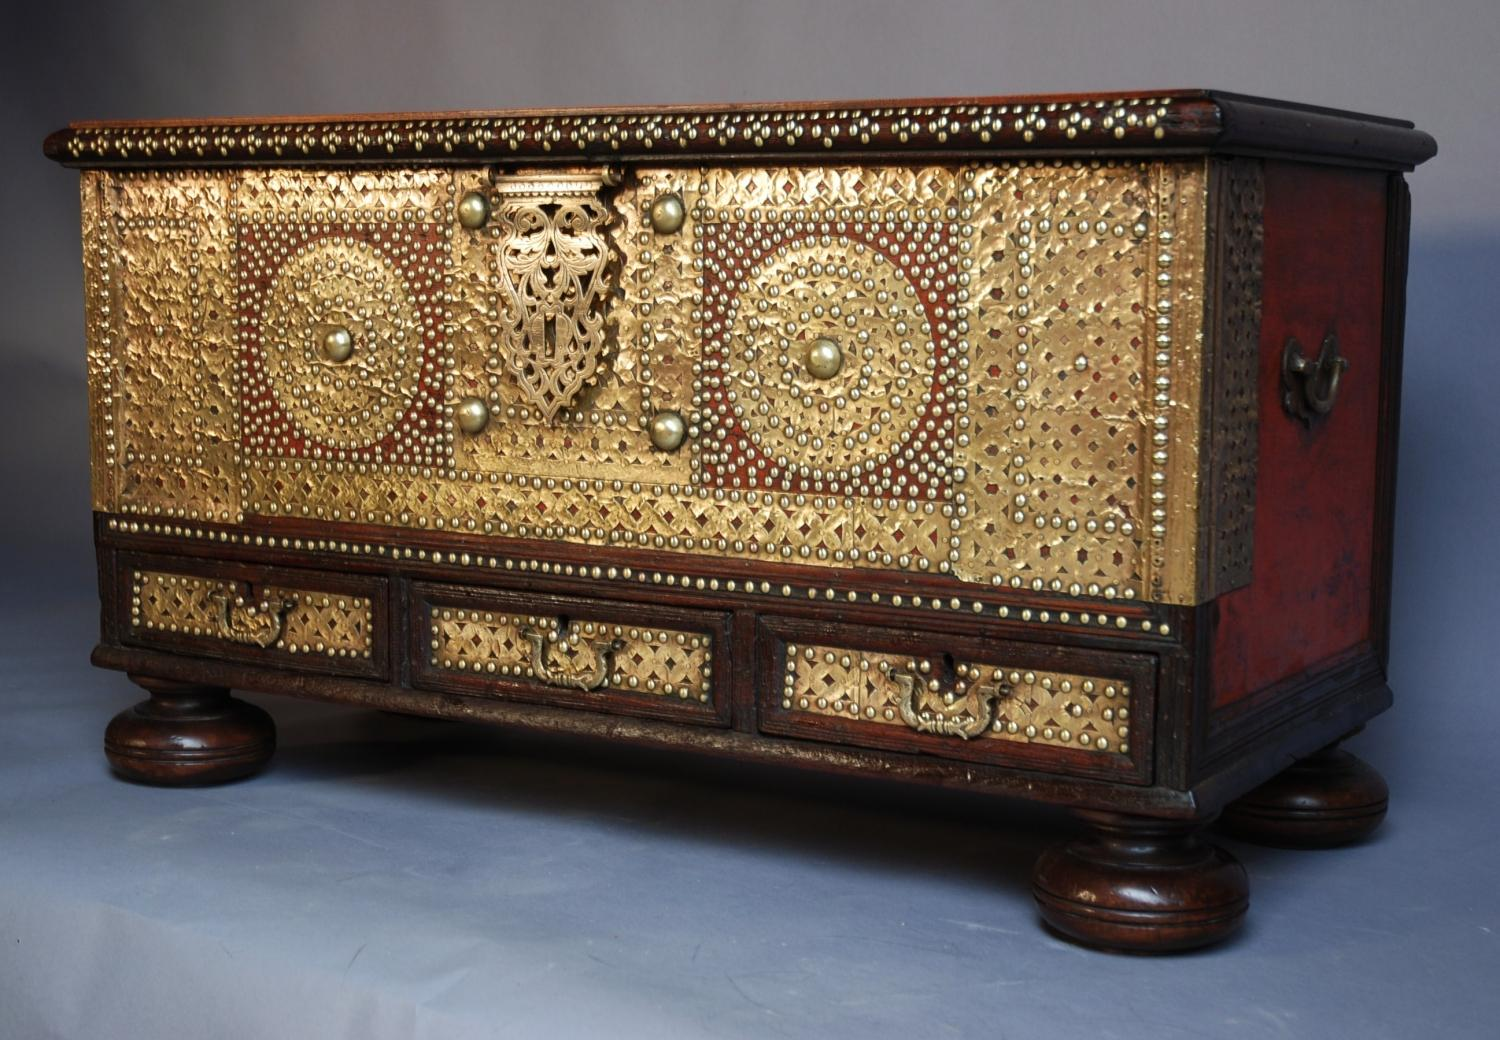 18thc decorative Sinhalese traders chest